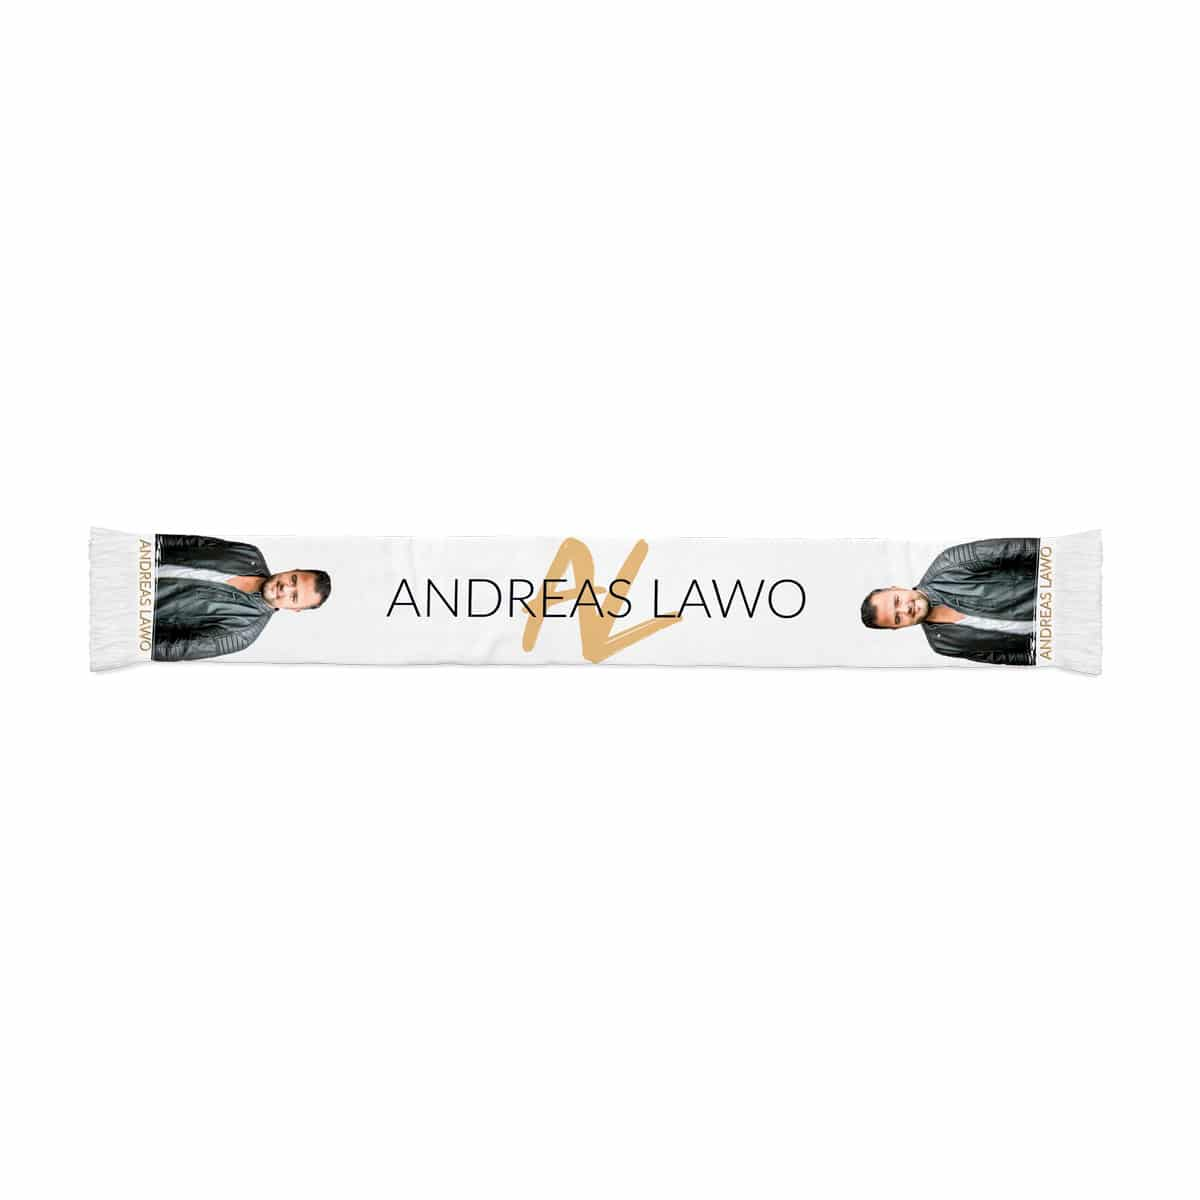 Fanschal Andreas Lawo